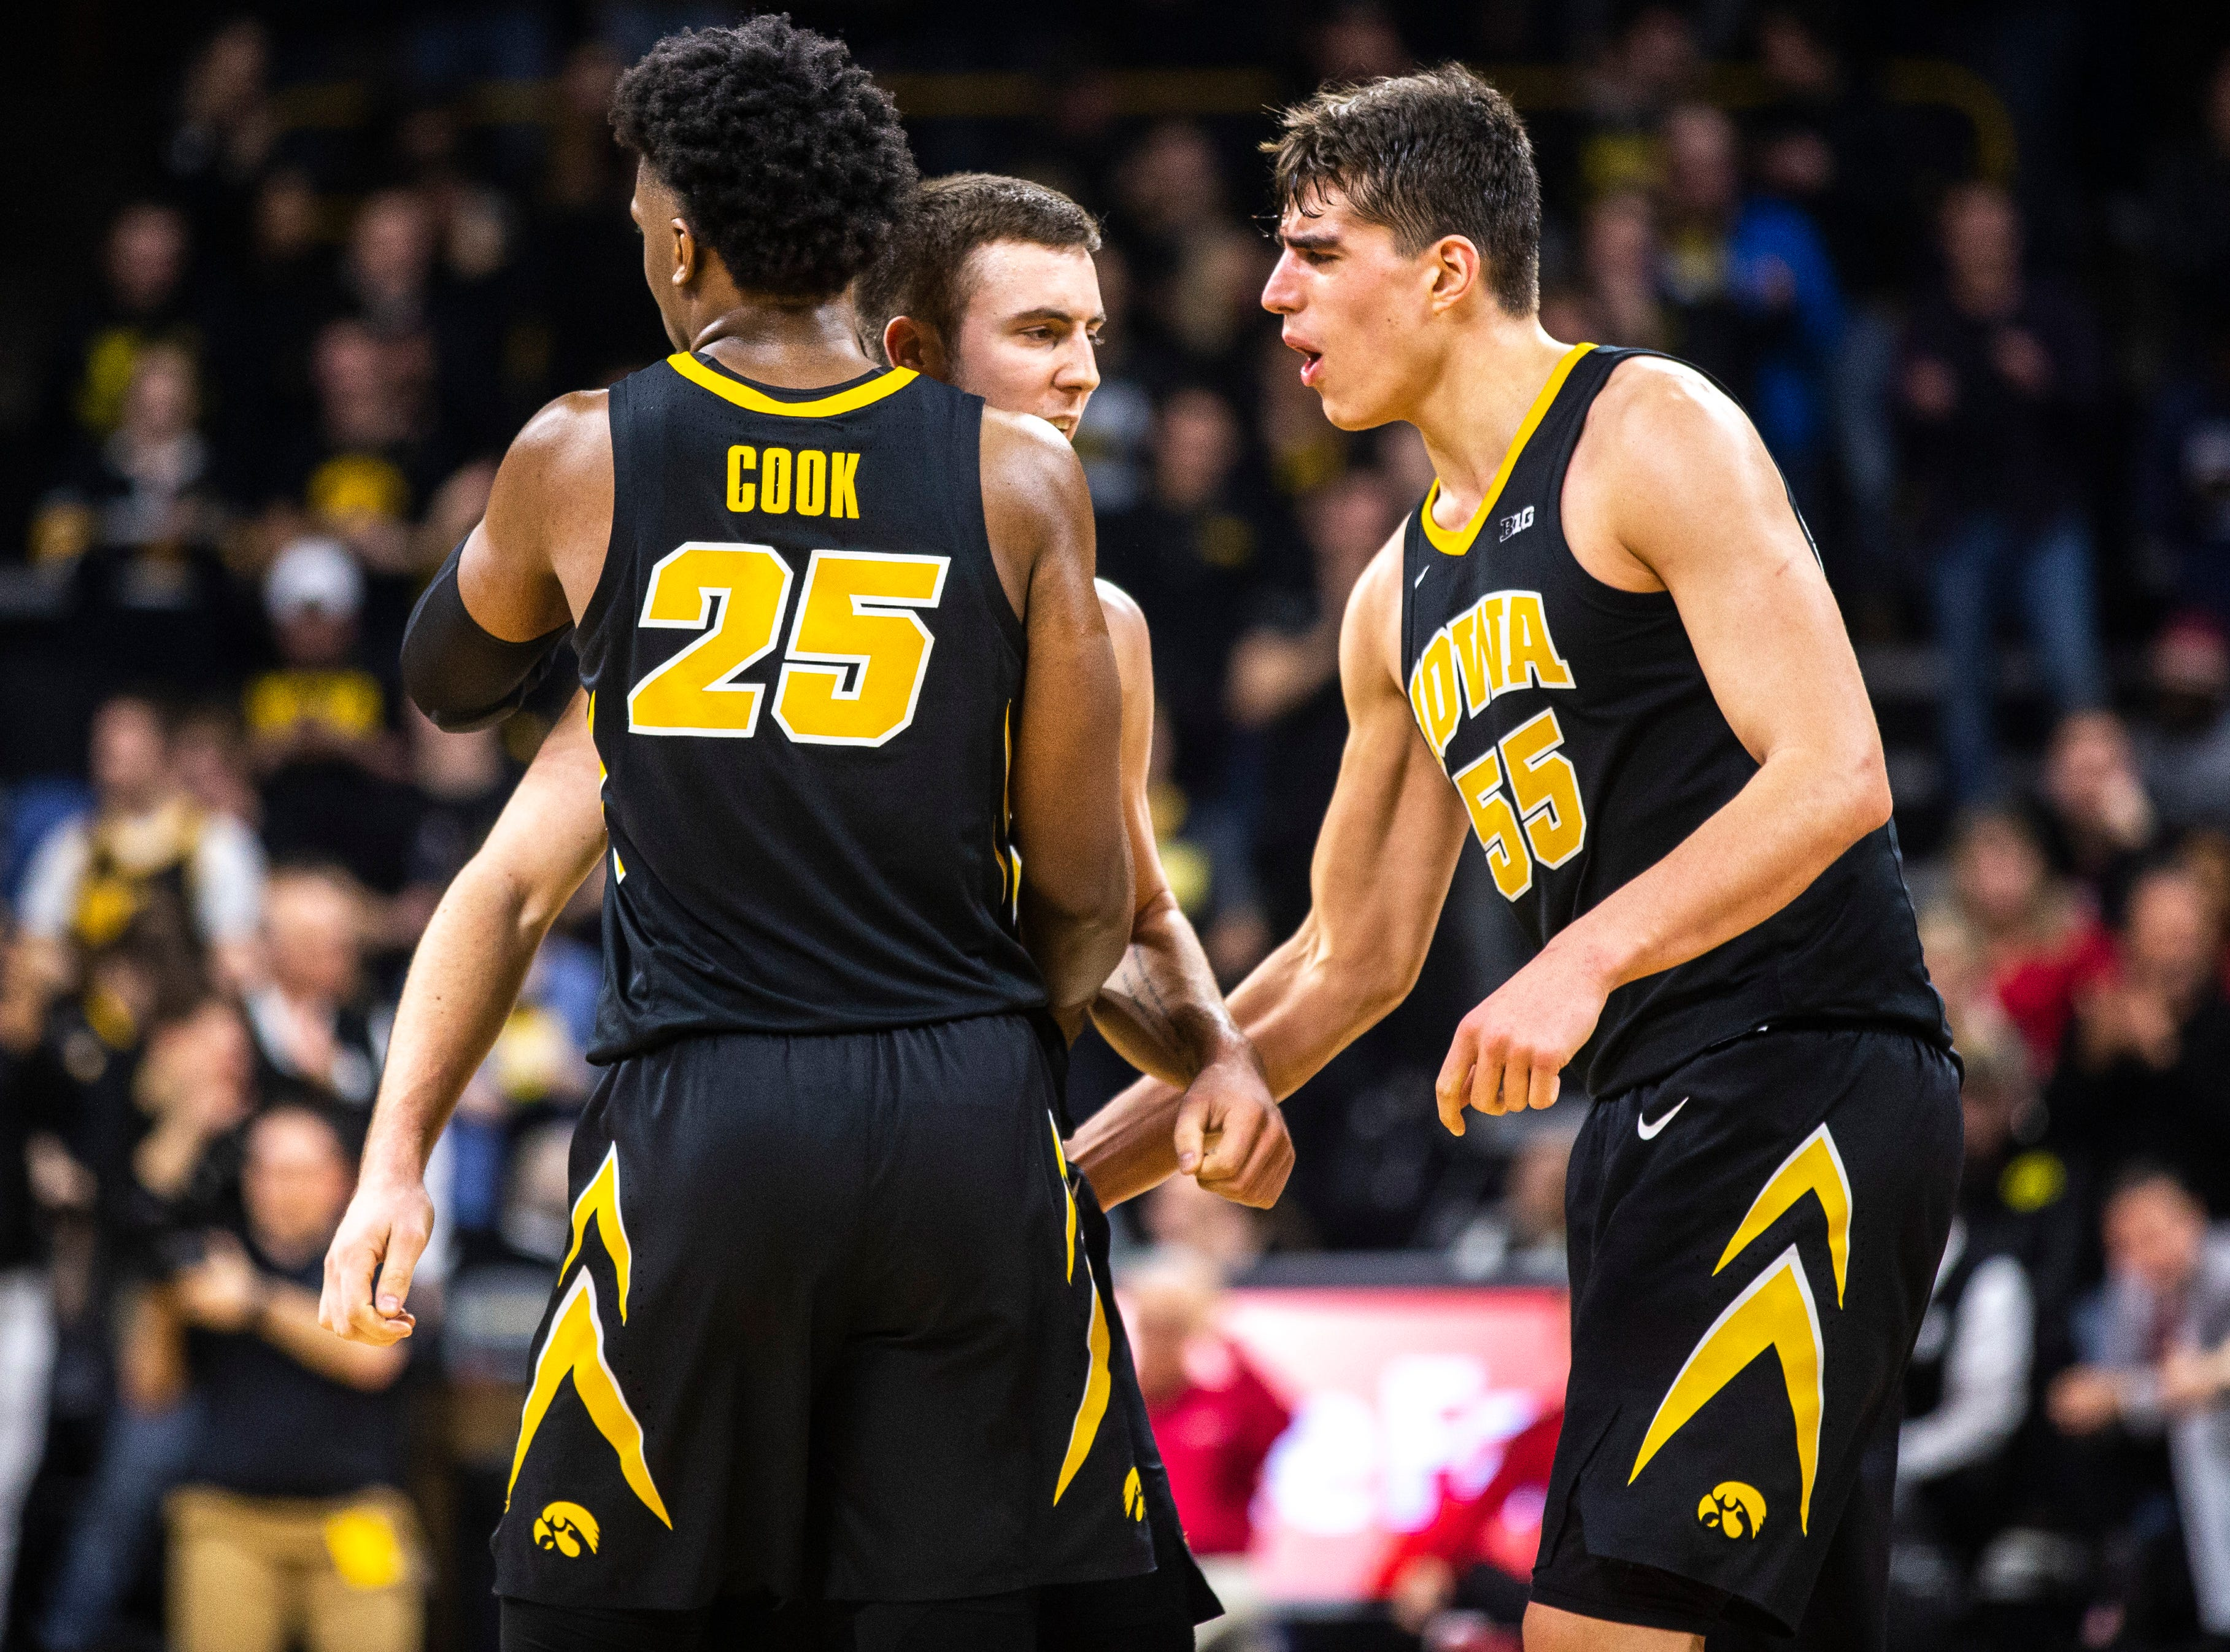 Iowa guard Connor McCaffery is embraced by Iowa forward Tyler Cook, left, and Luka Garza (55) after getting fouled during a NCAA Big Ten Conference men's basketball game on Friday, Feb. 22, 2019 at Carver-Hawkeye Arena in Iowa City, Iowa.